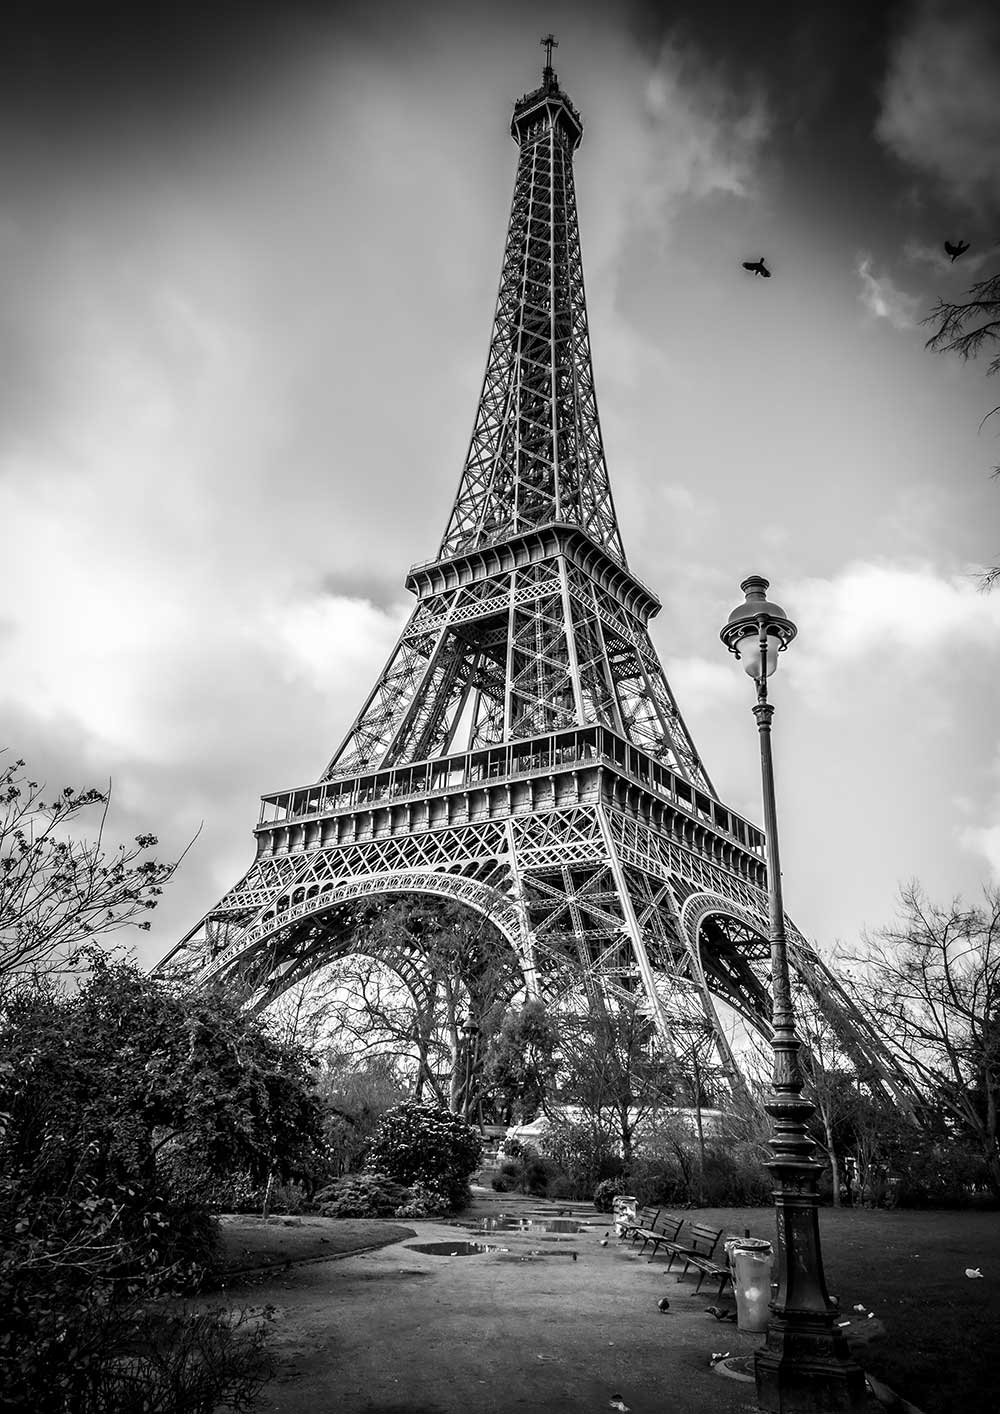 photo paris la tour eiffel champ de mars image art noir et blanc emmanuel gill. Black Bedroom Furniture Sets. Home Design Ideas